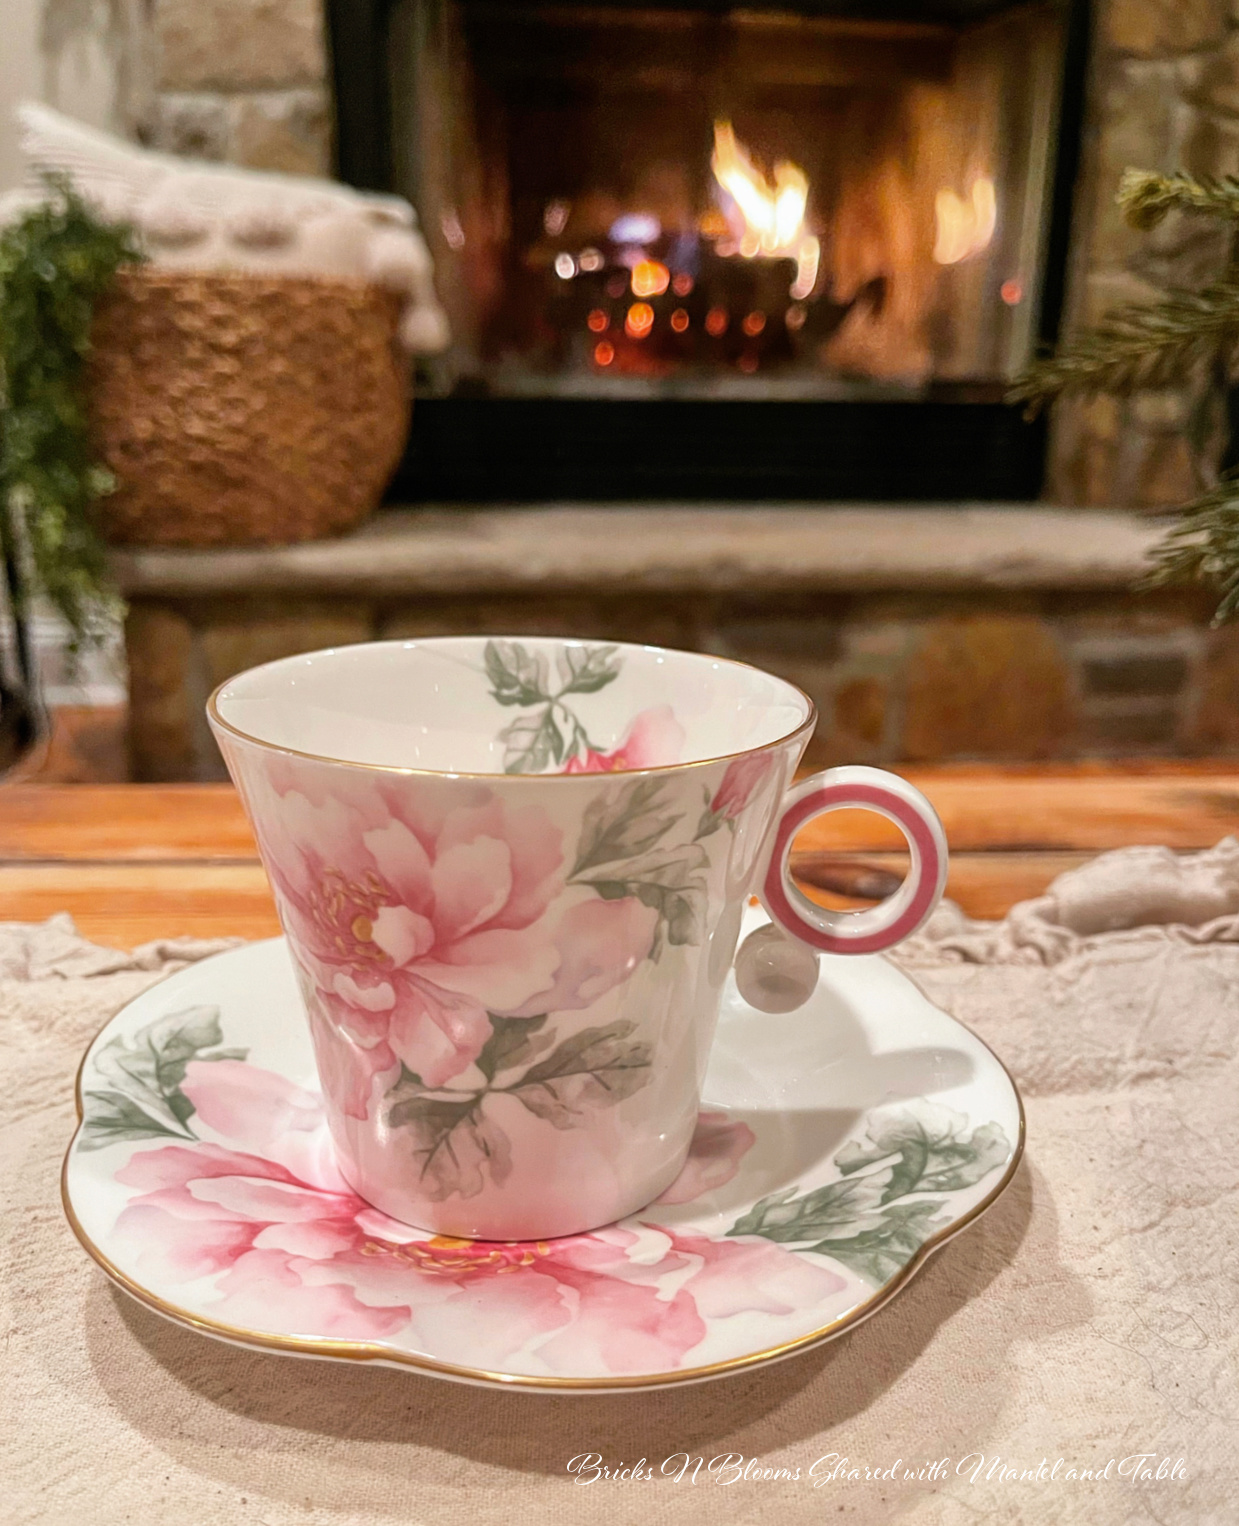 Pink flowered teacup in front of a stone hearth with a fire